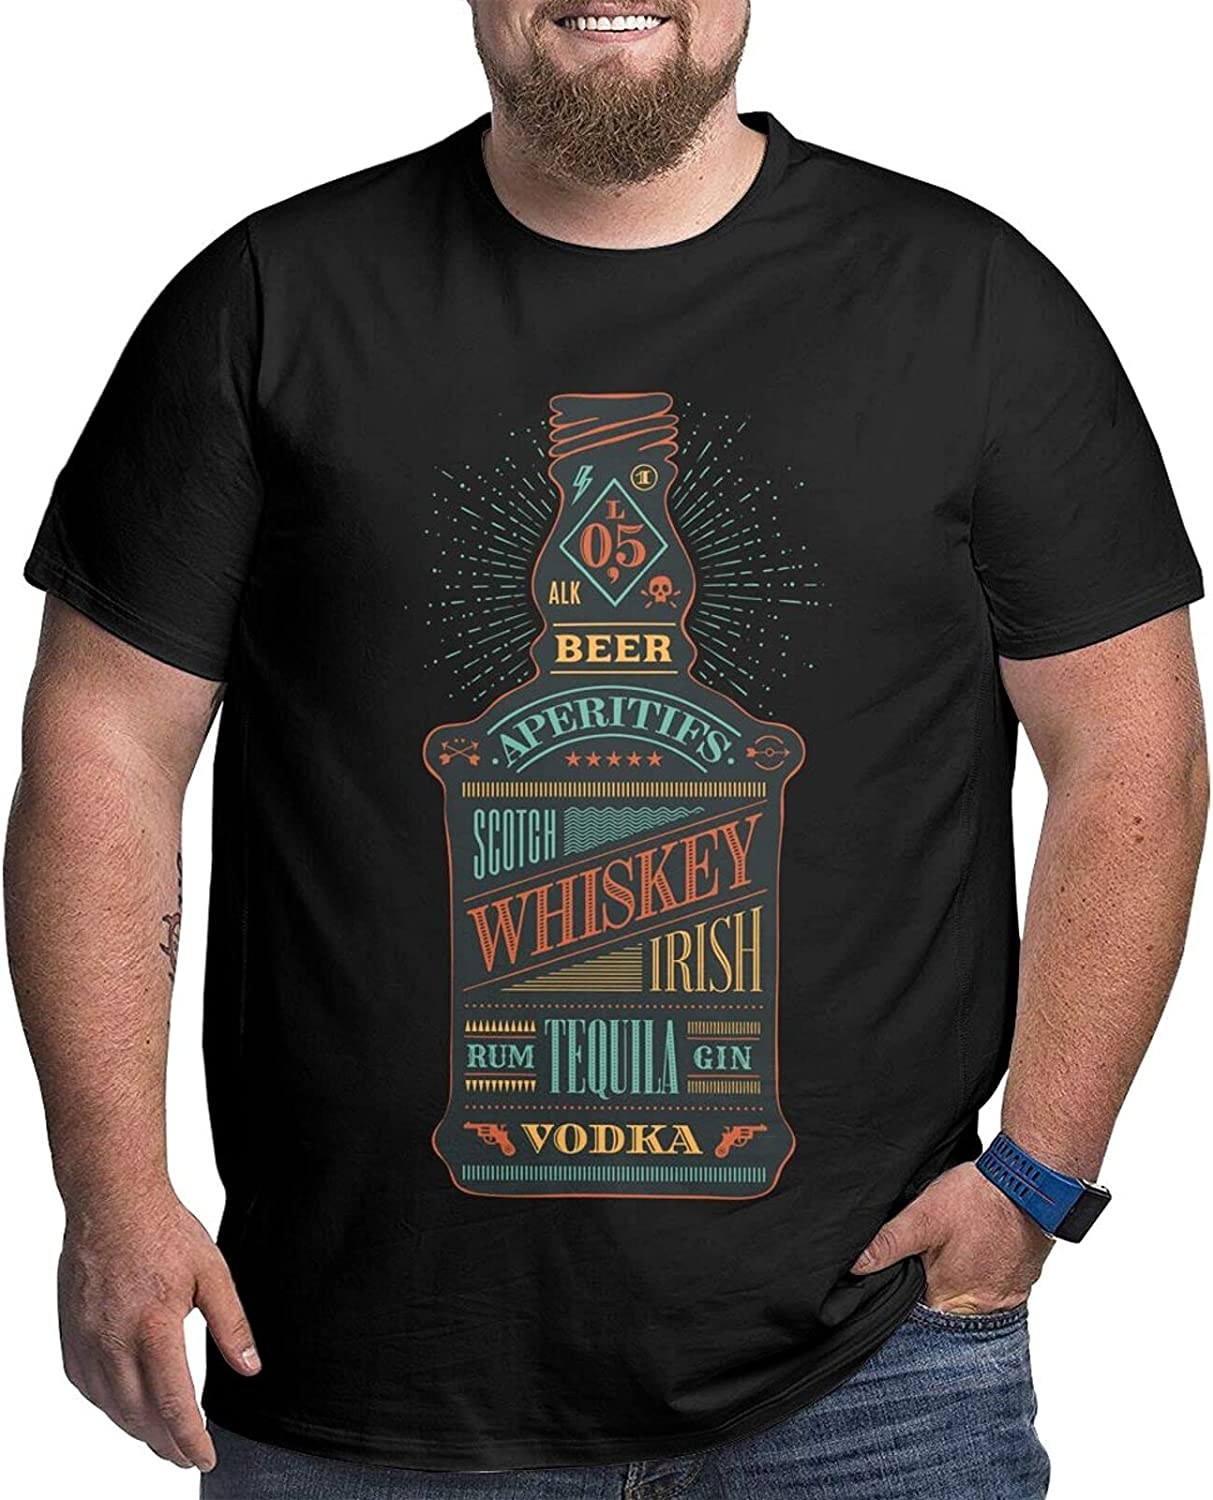 Colorful Bottle of Alcohol Bear with Men's Simple Big Size Summer Outdoor Short Sleeve Shirt